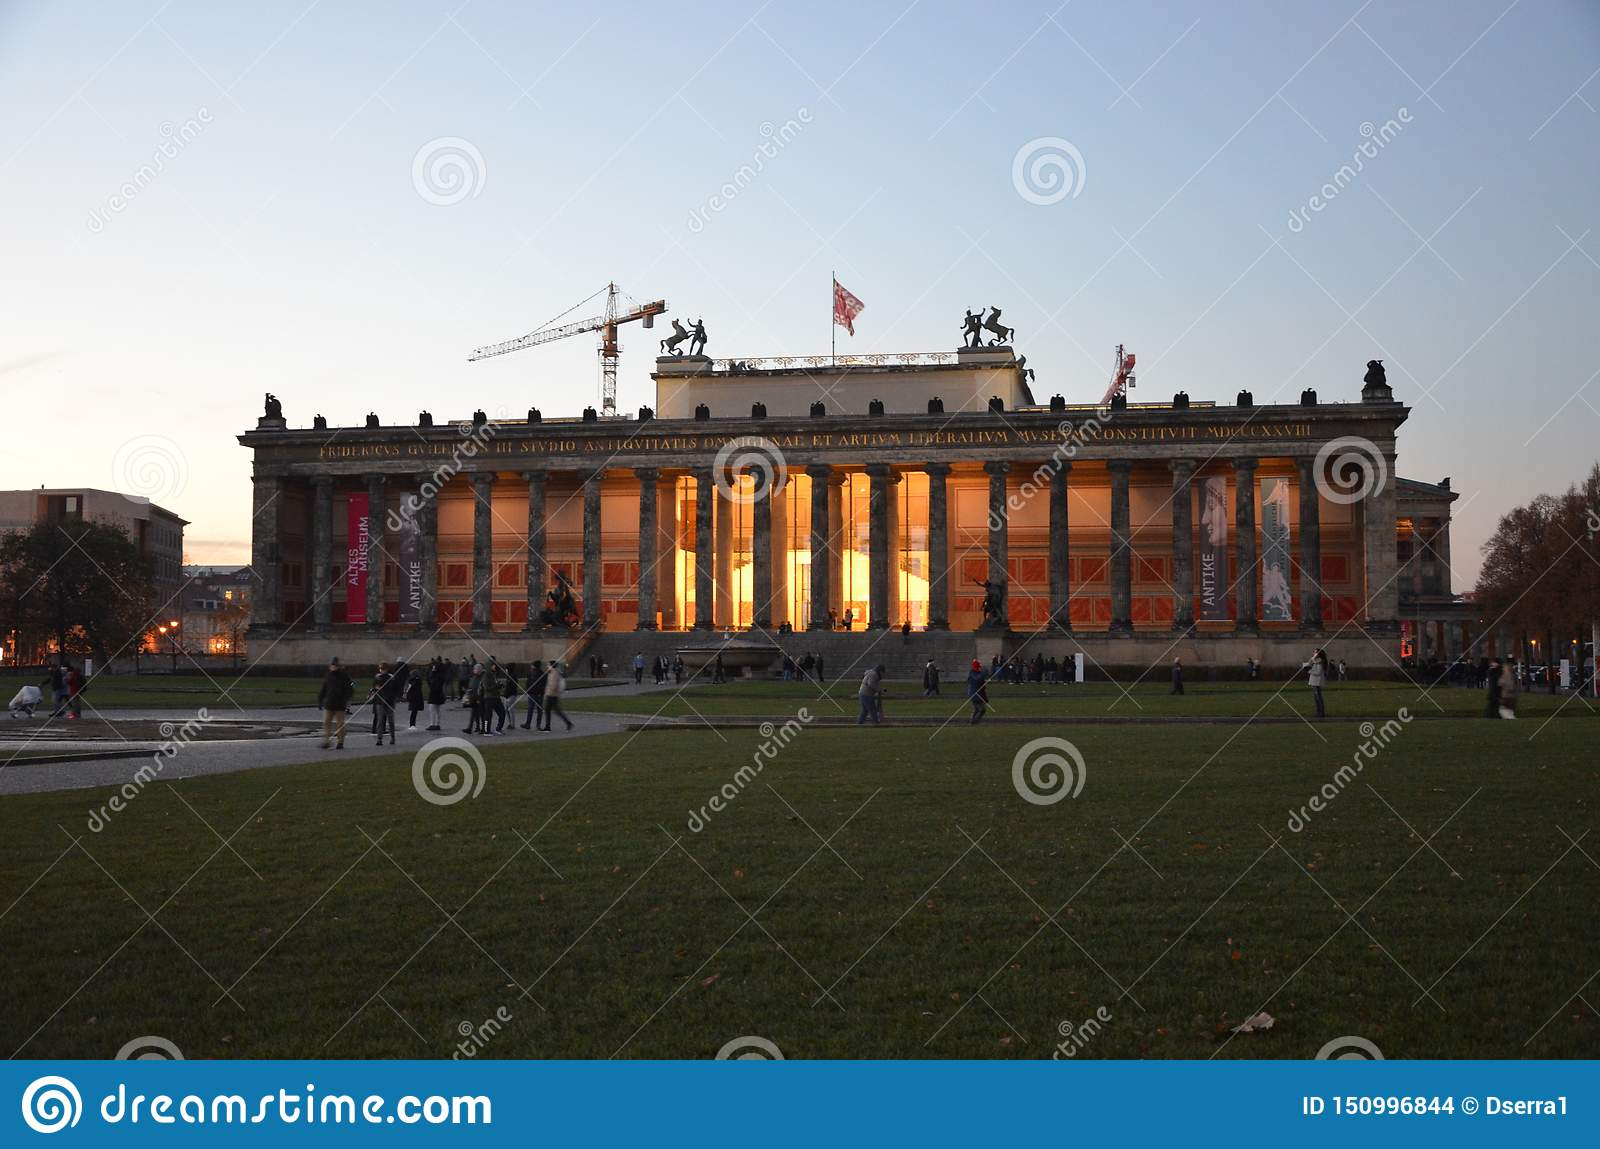 Berlin, Germany - the Altes Museum in Berlin